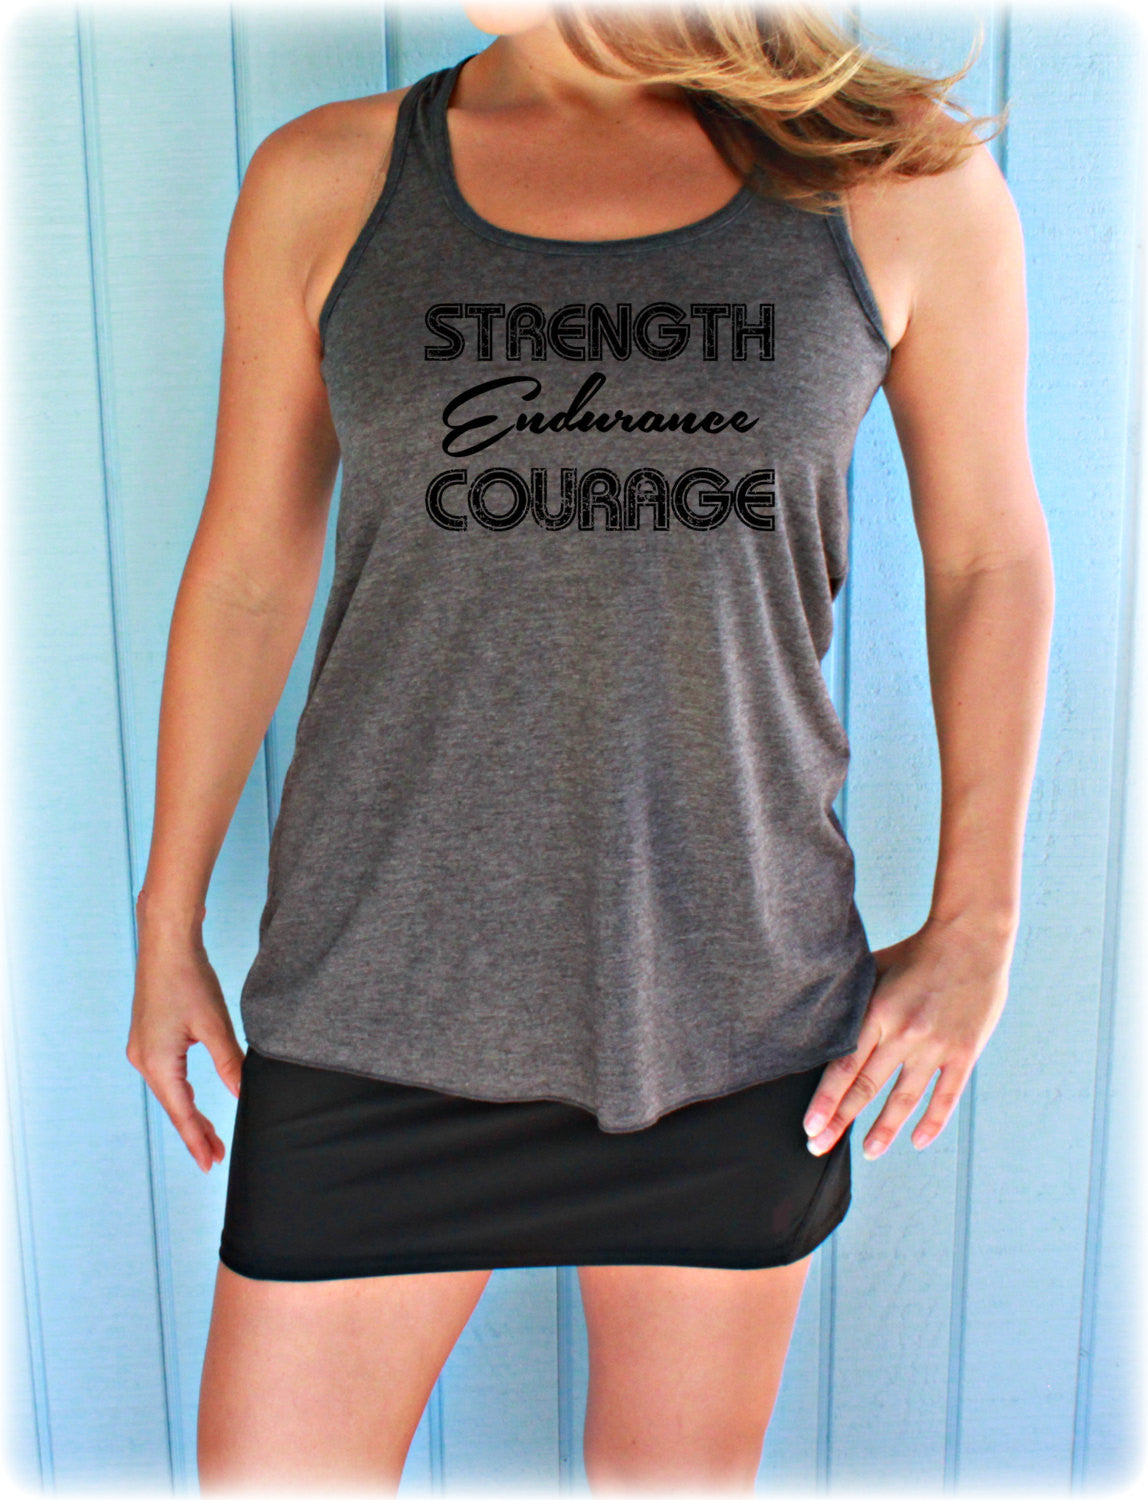 Womens Motivational Workout Tank Top. Fitness Motivation. Strength Endurance Courage. Workout Clothing.